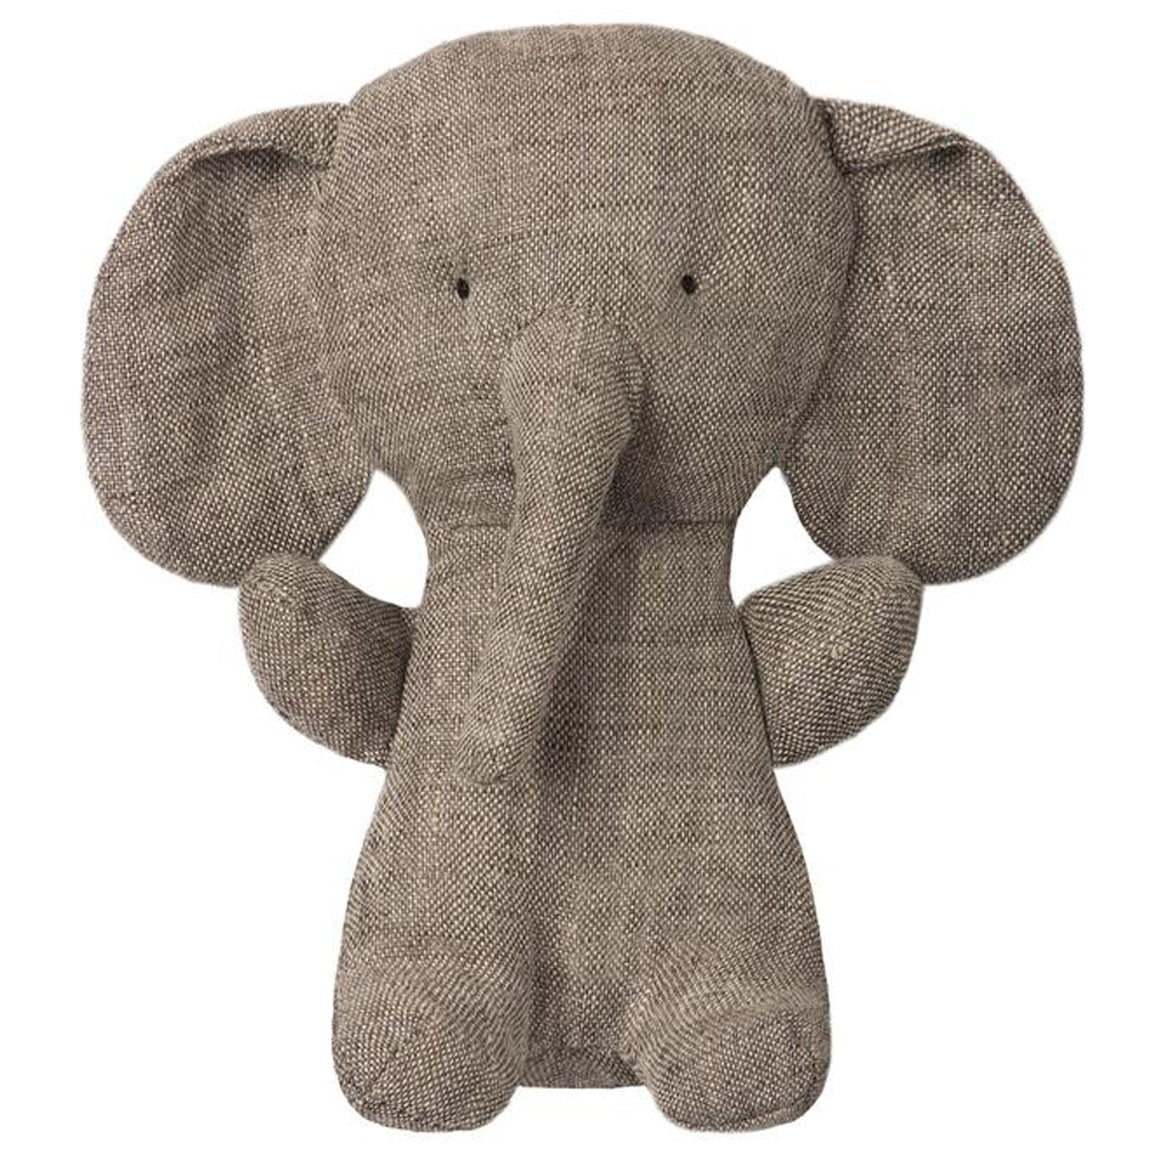 Noah's Friends Mini Elephant - KESTREL